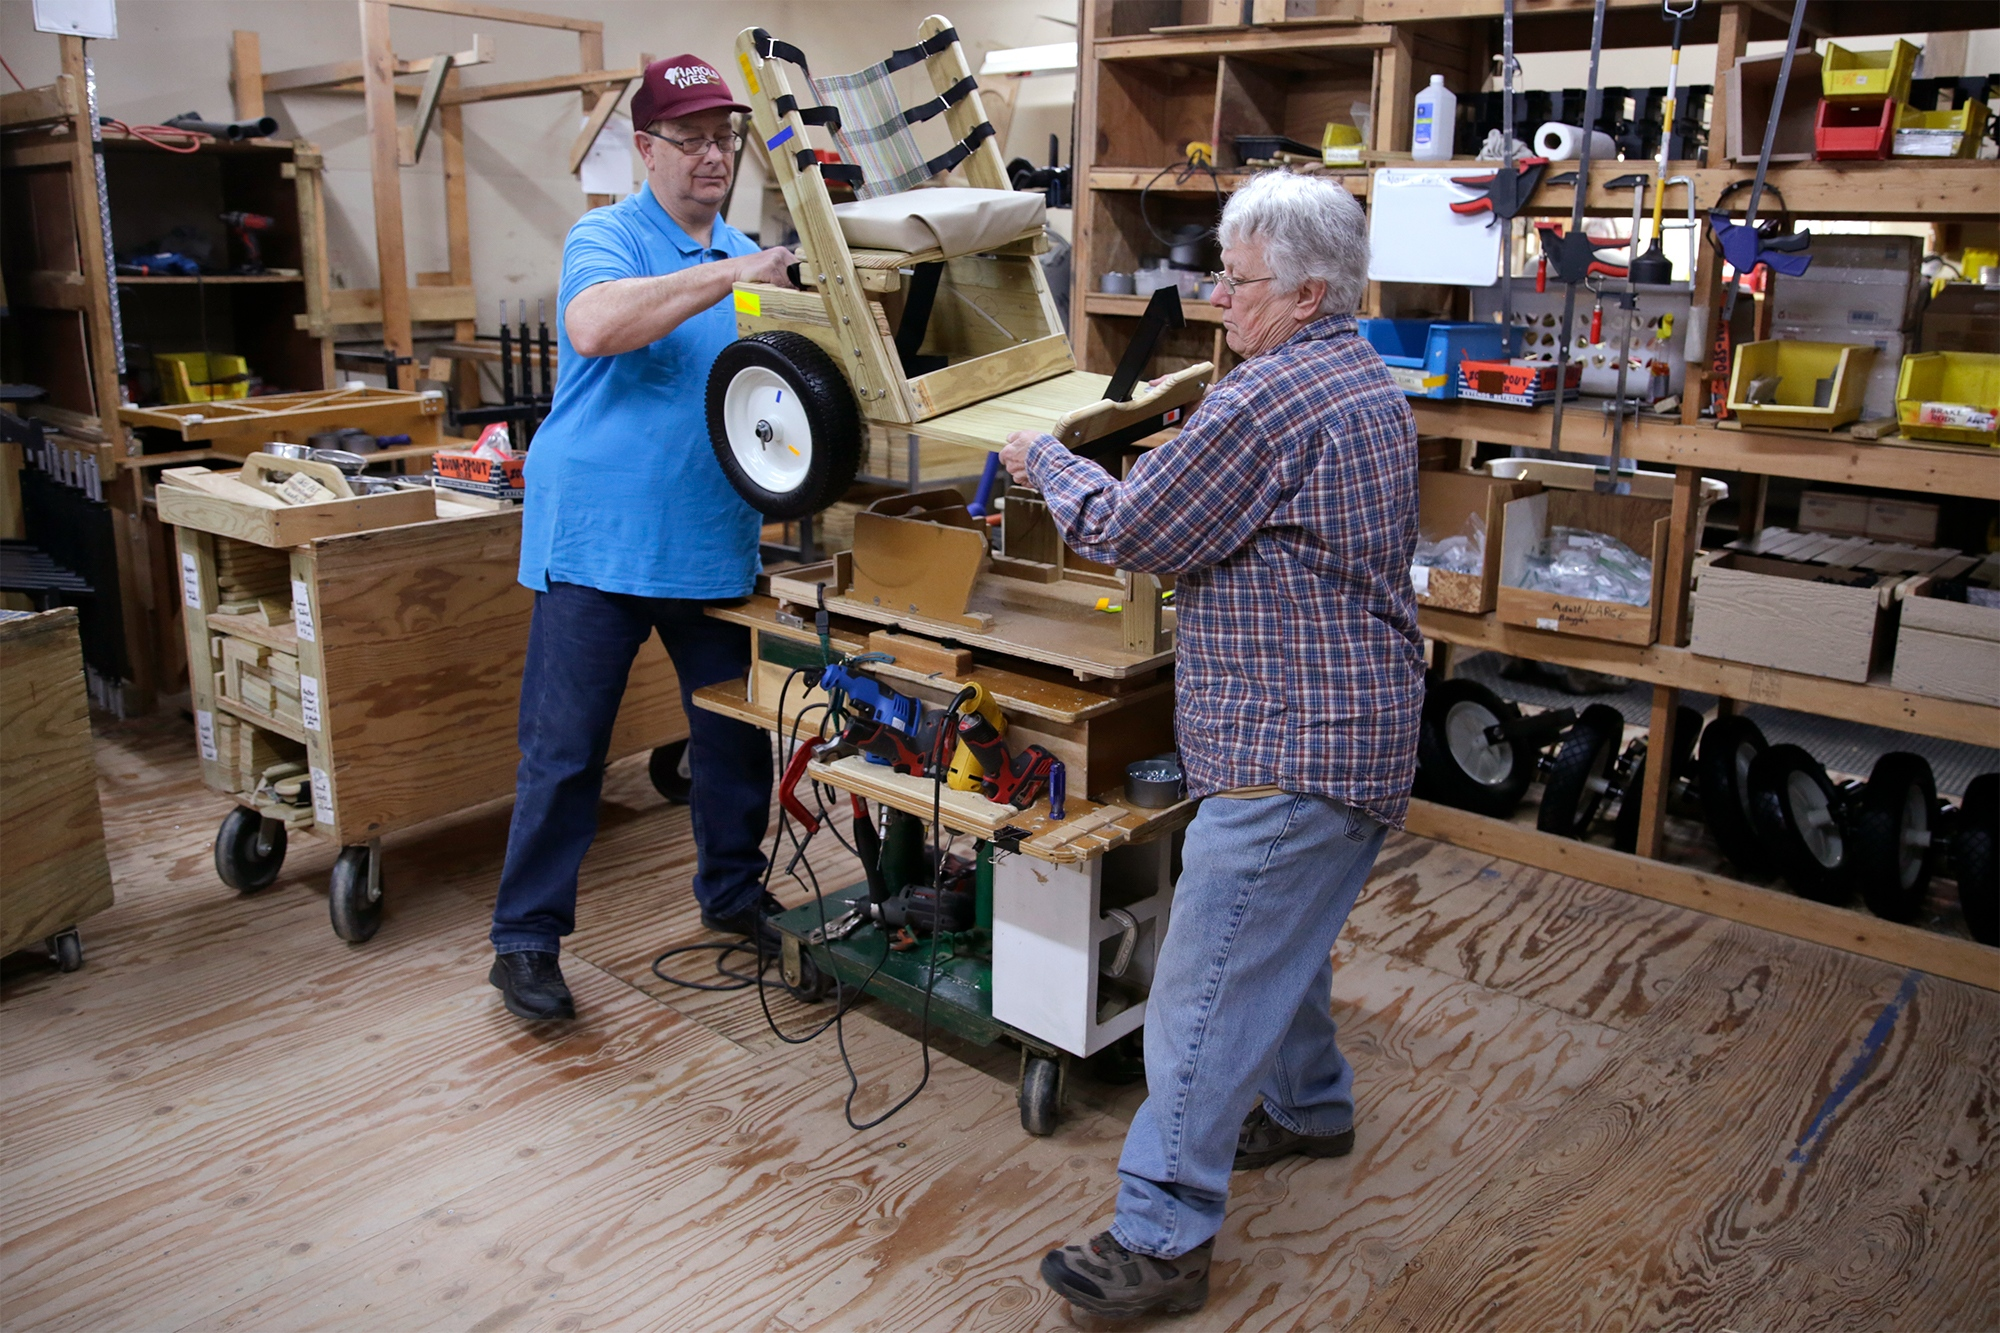 James Kingsley and Nancy Gentzsch move a completed children's mobility cart off their workbench on Tuesday April 9, 2019 in Columbia. The pair are volunteers at Mobility Worldwide, where the carts are built. Volunteers work in teams to construct the devices quickly.